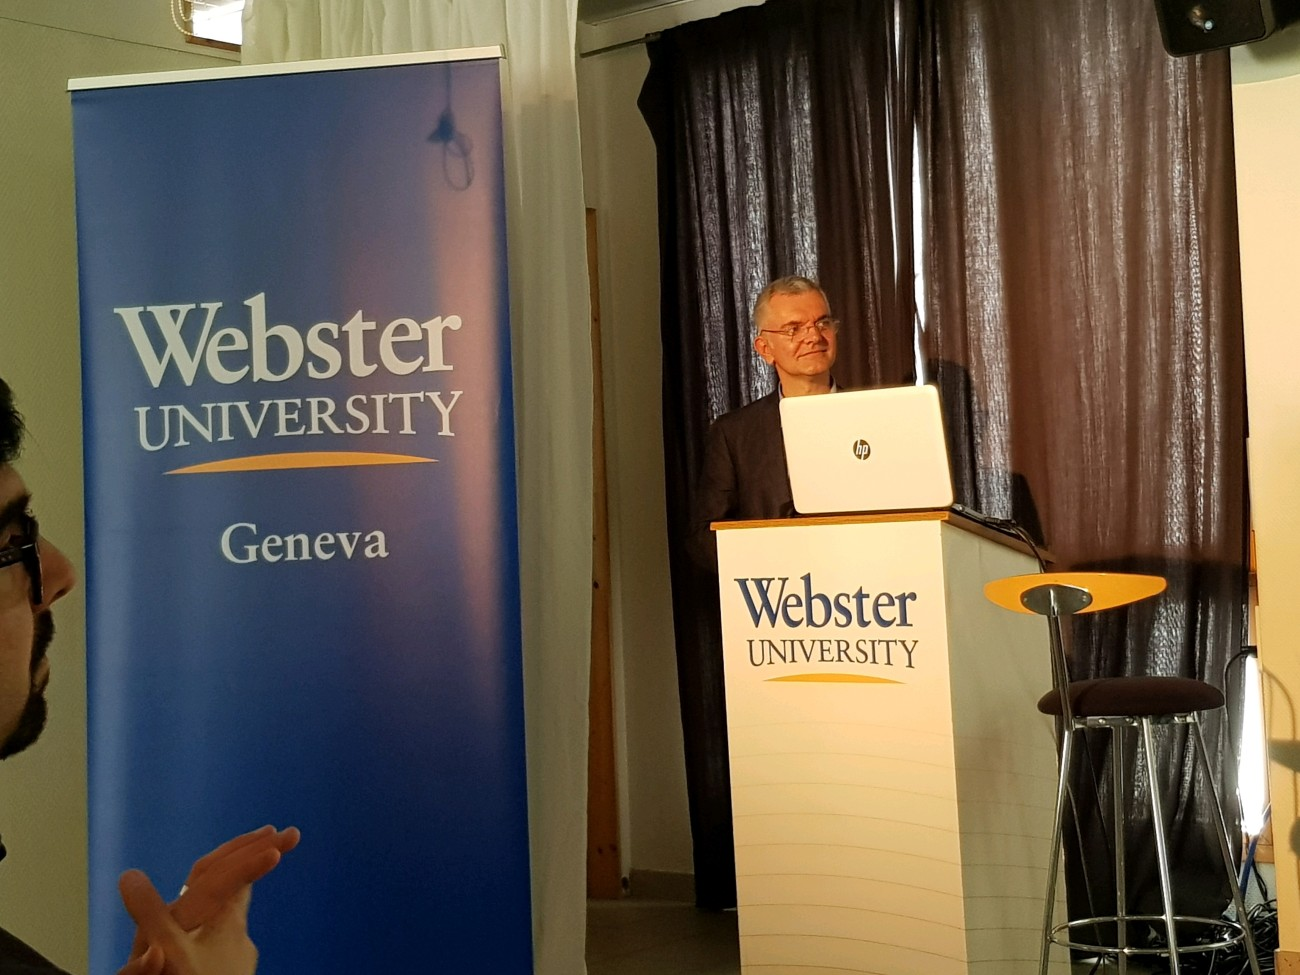 IoT conference Webster